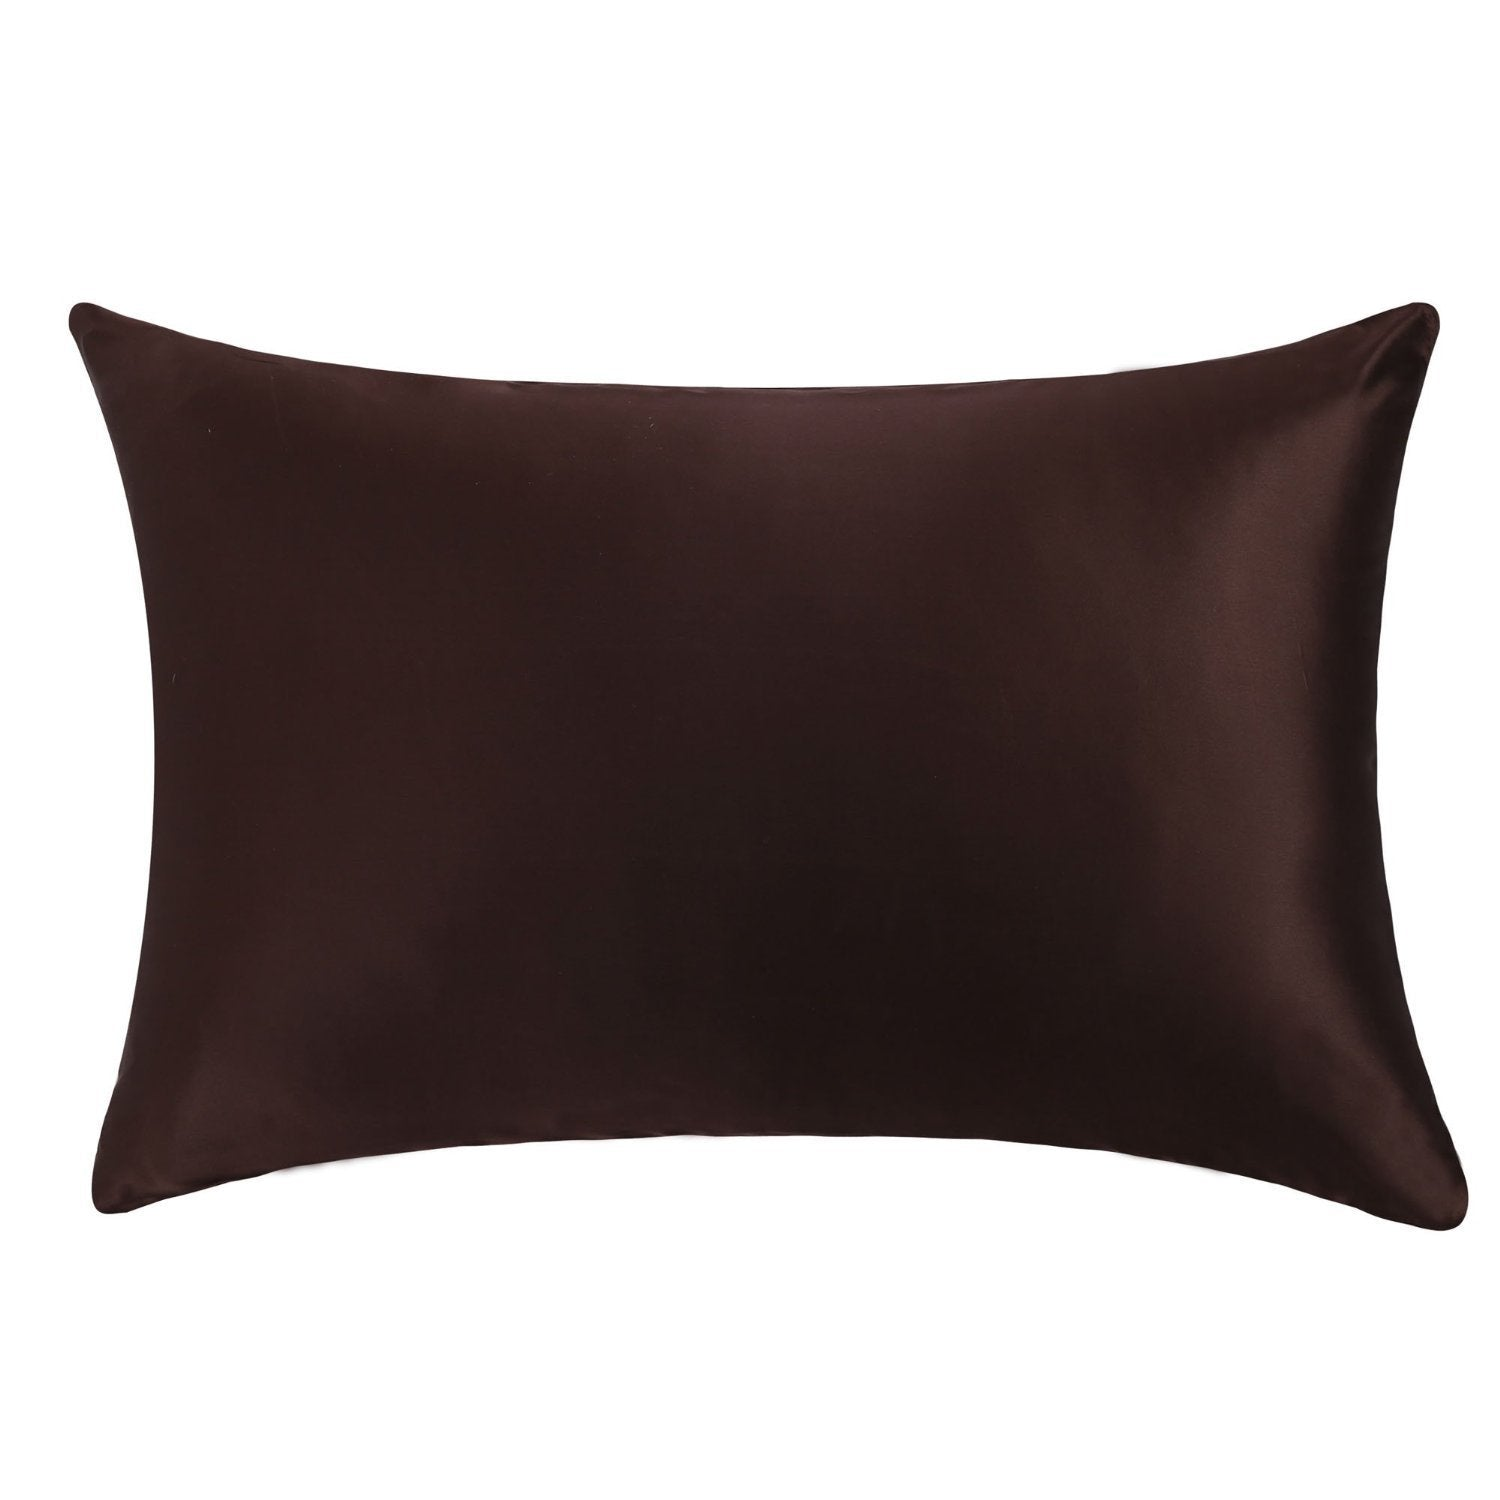 OOSilk 100% 22MM Luxury Mulberry Silk Pillowcase,Standard(20in x 26in),Chocolate,1 pc